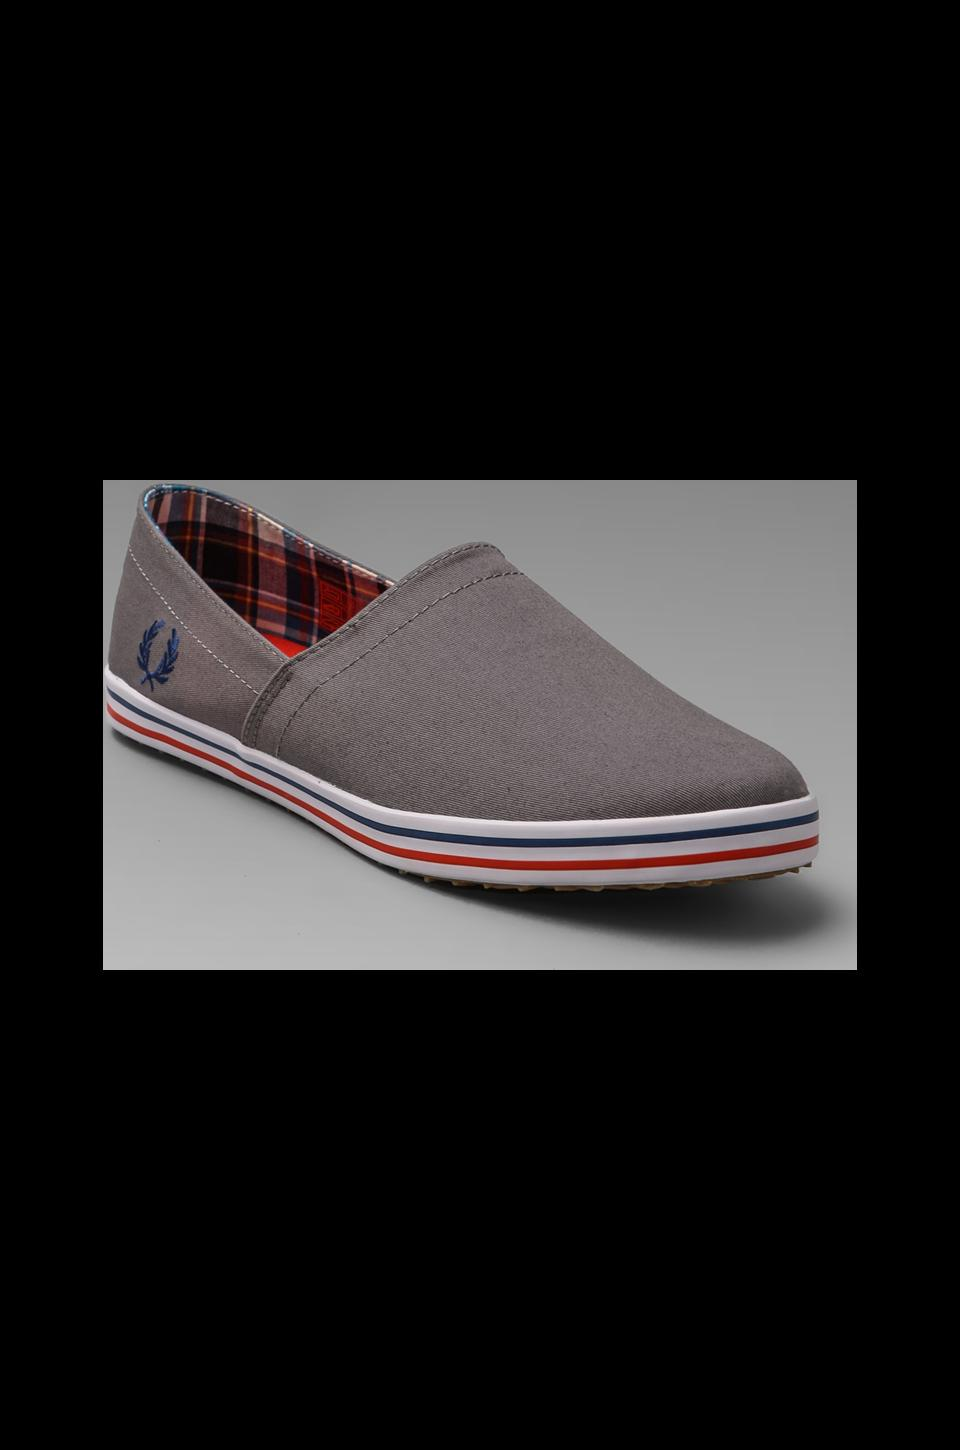 Fred Perry Kingston Stampdown Twill Slip On in Mid Grey/Pacific/Fire Red